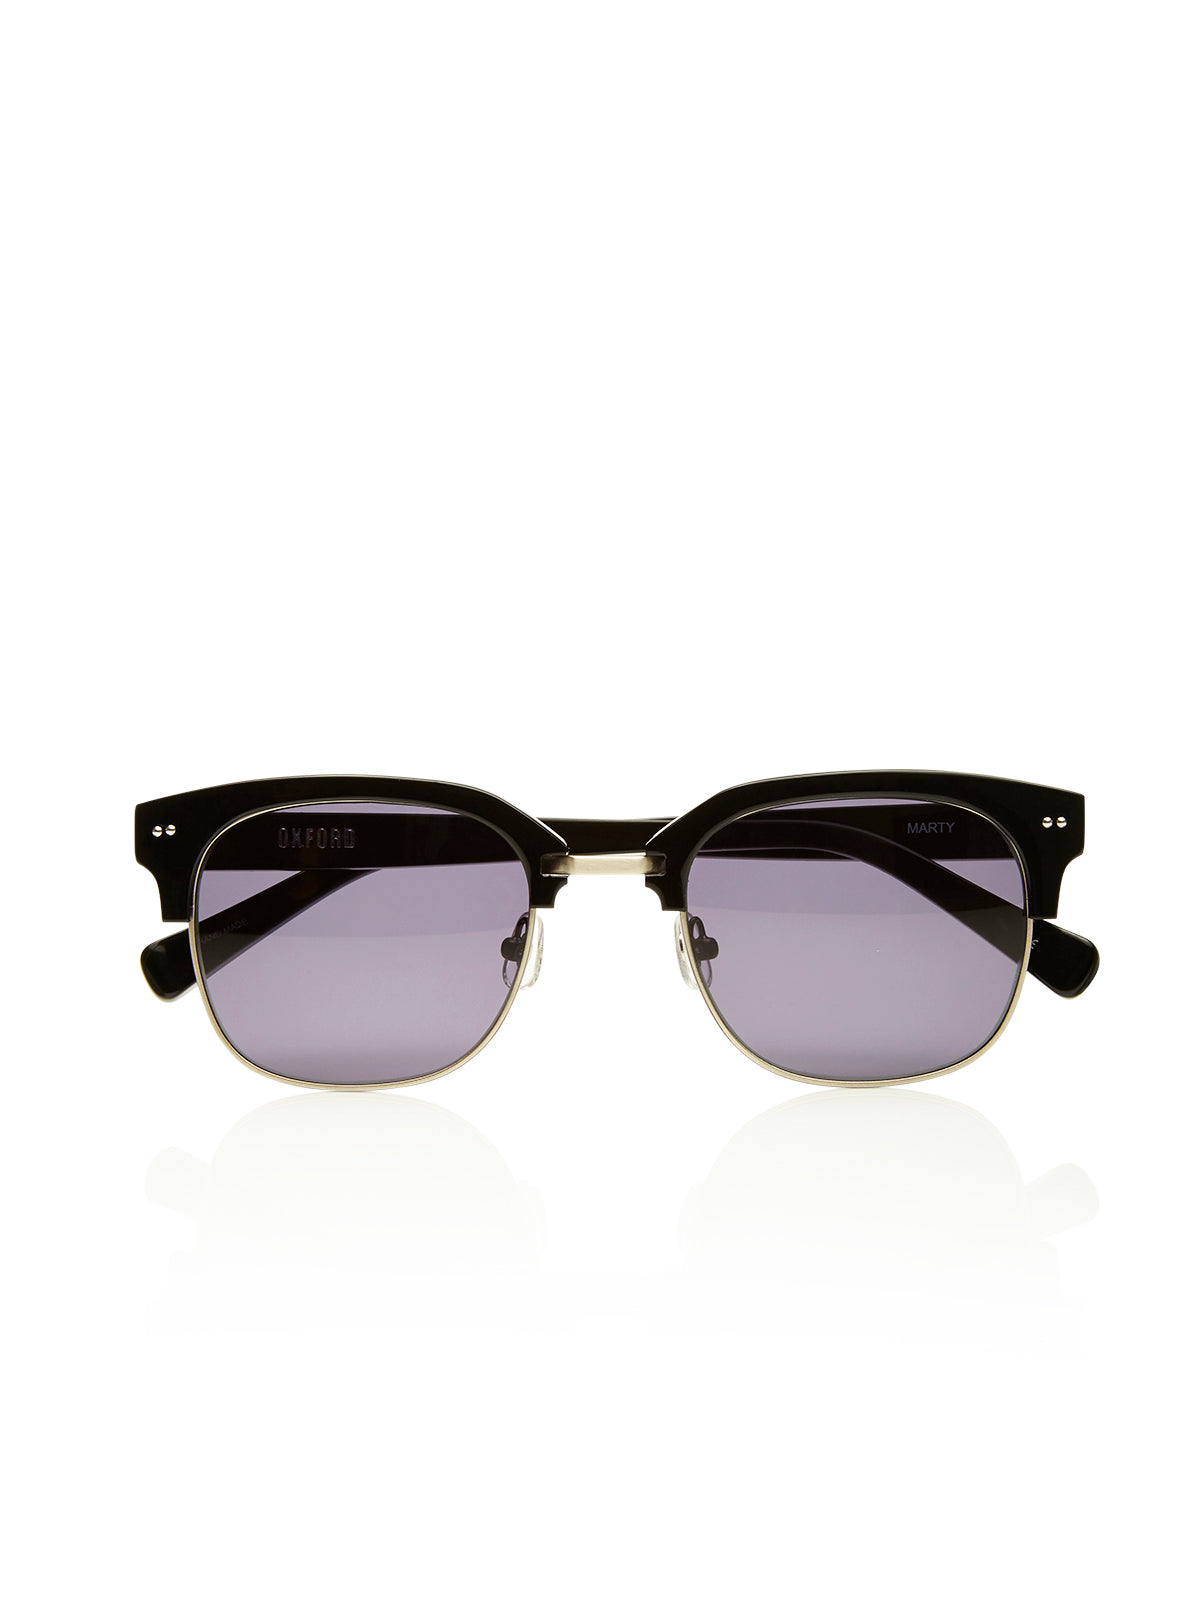 MARTY SUNGLASSES BLACK